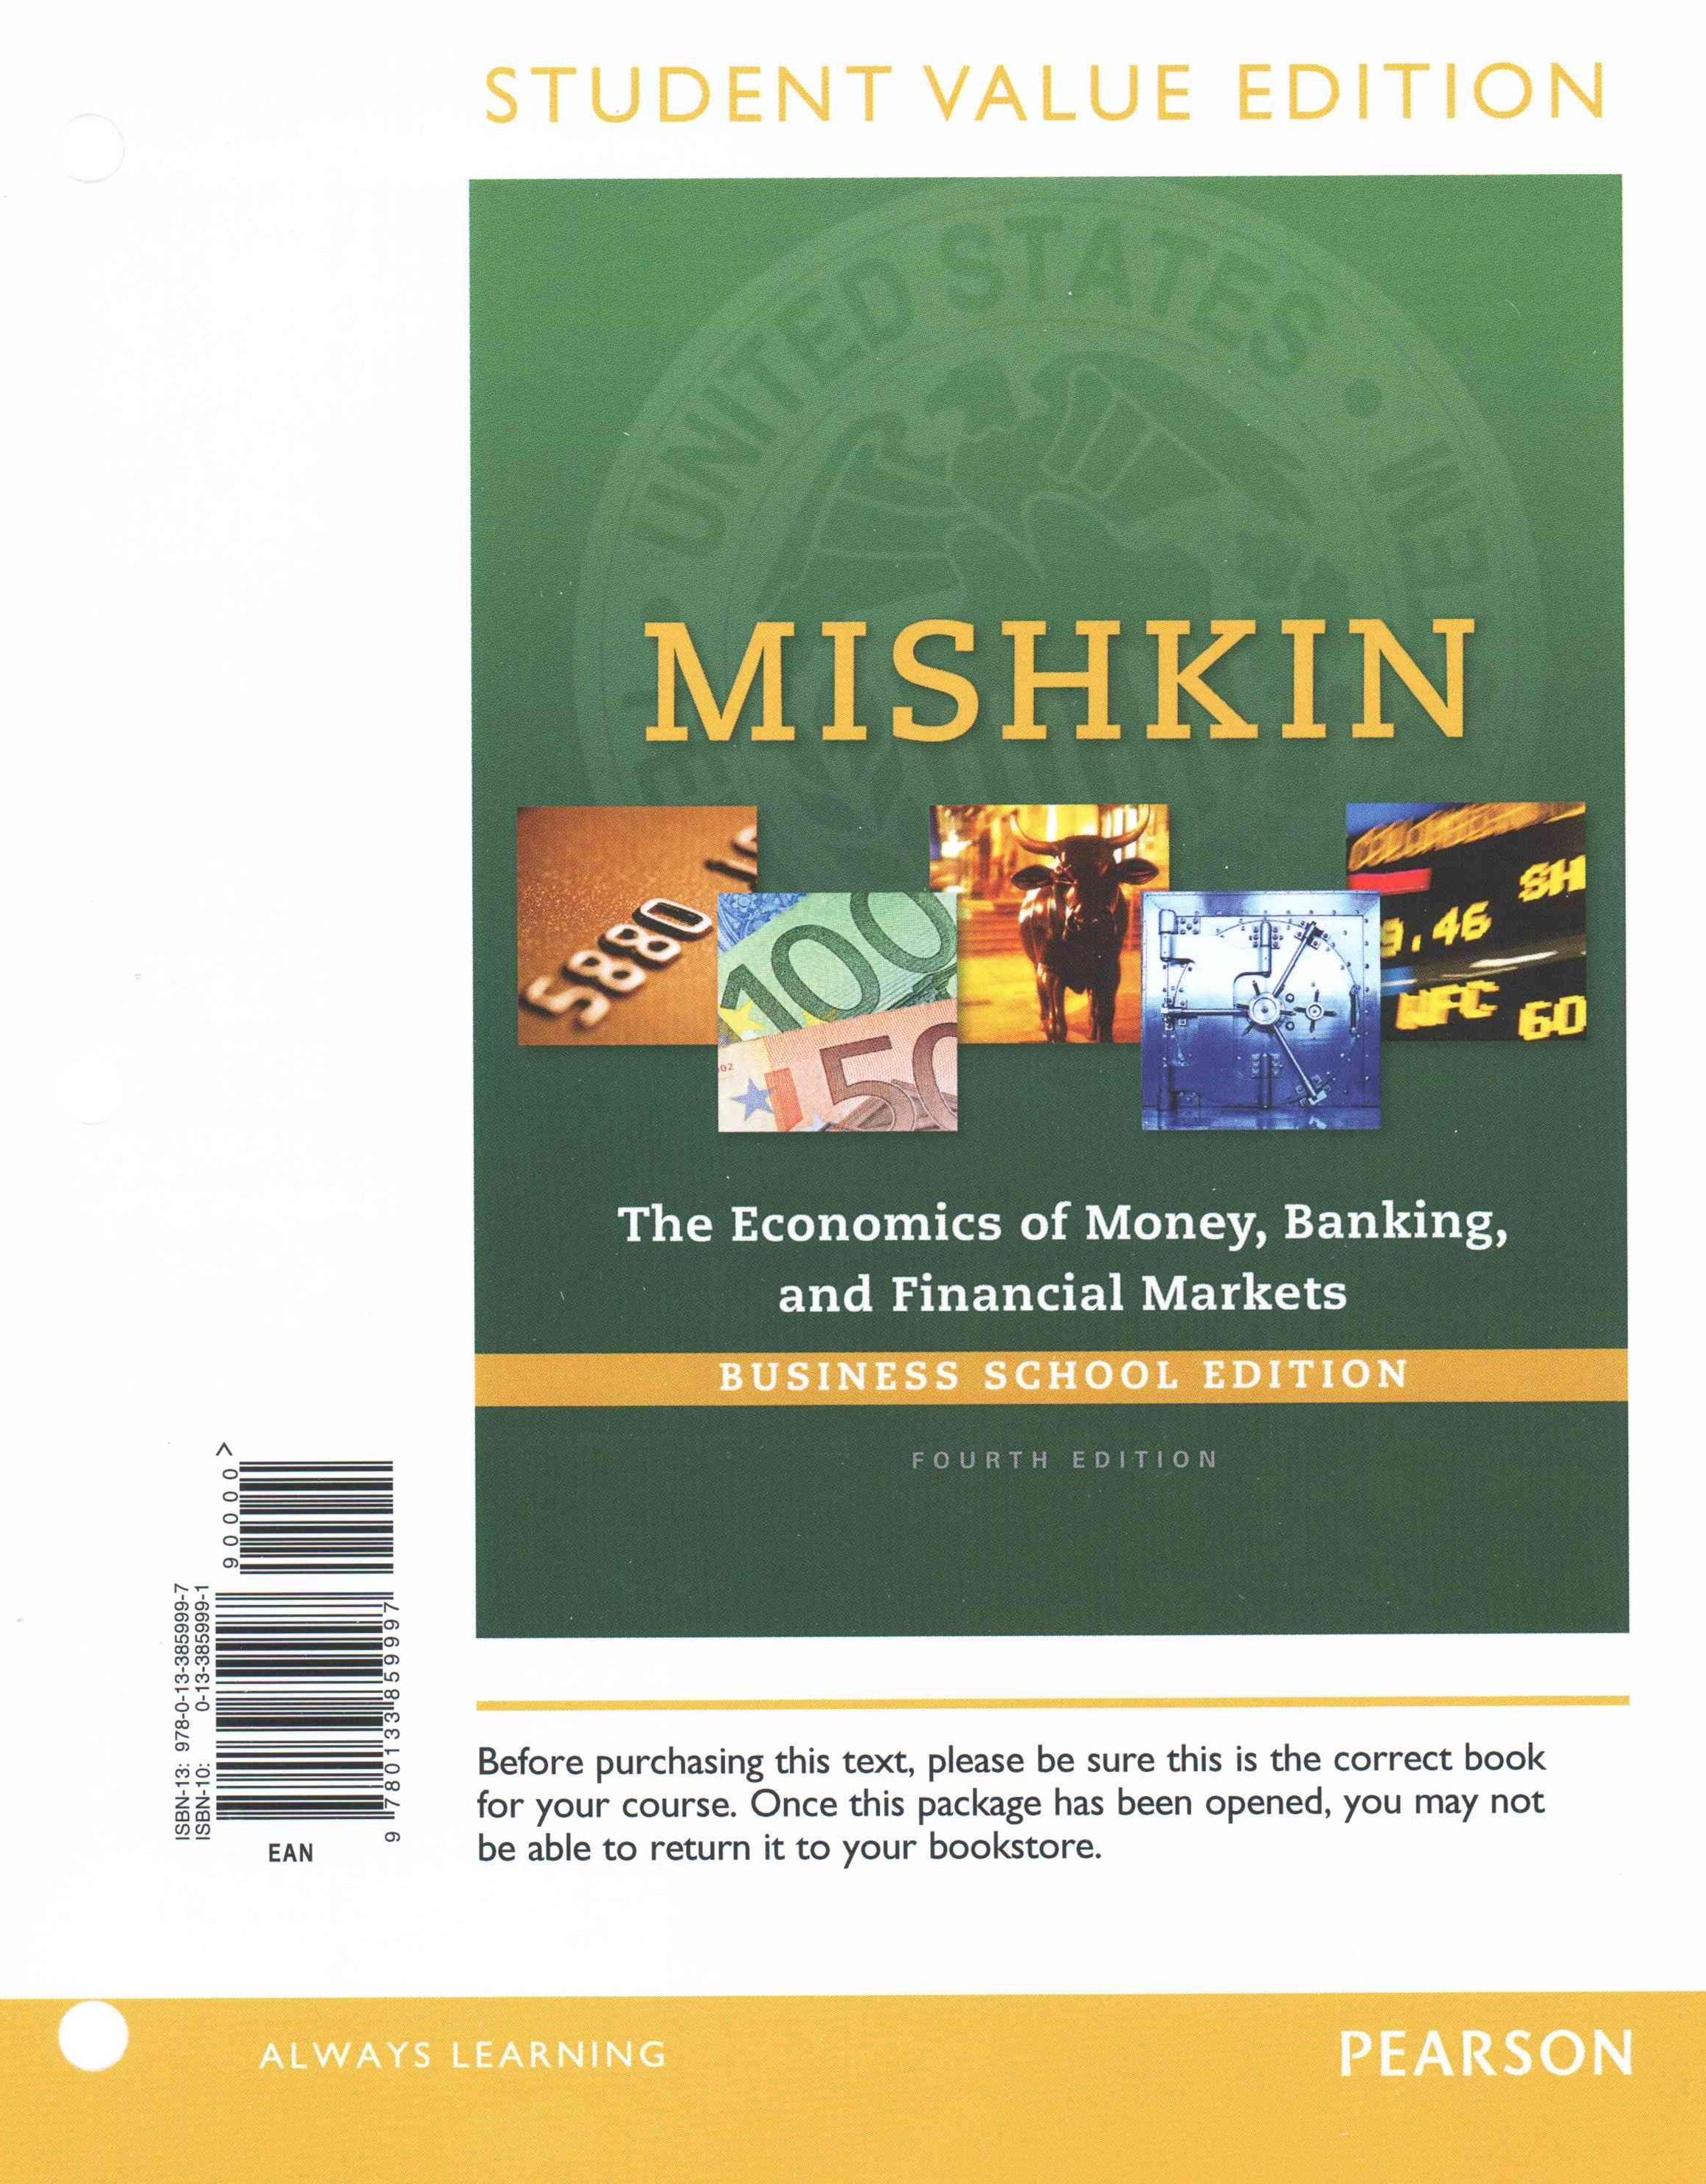 Economics of Money, Banking and Financial Markets, Business School Edition, Student Value Edition